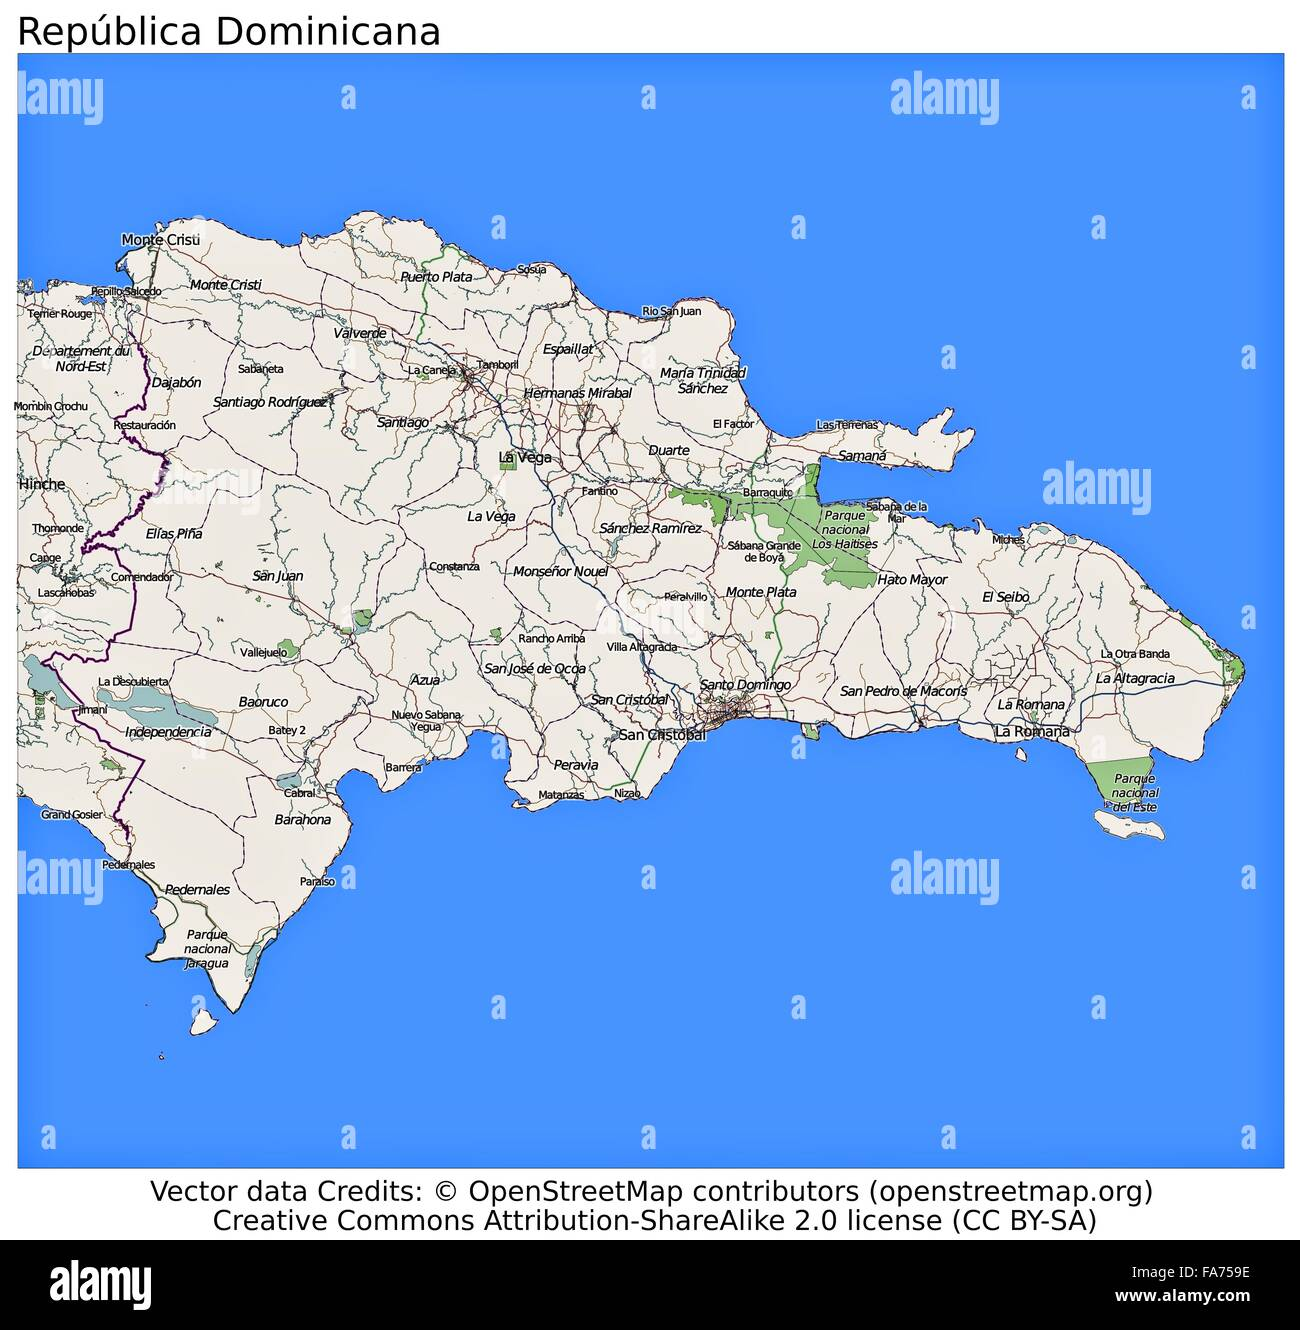 Picture of: Dominican Republic Location Map Stock Photo Alamy